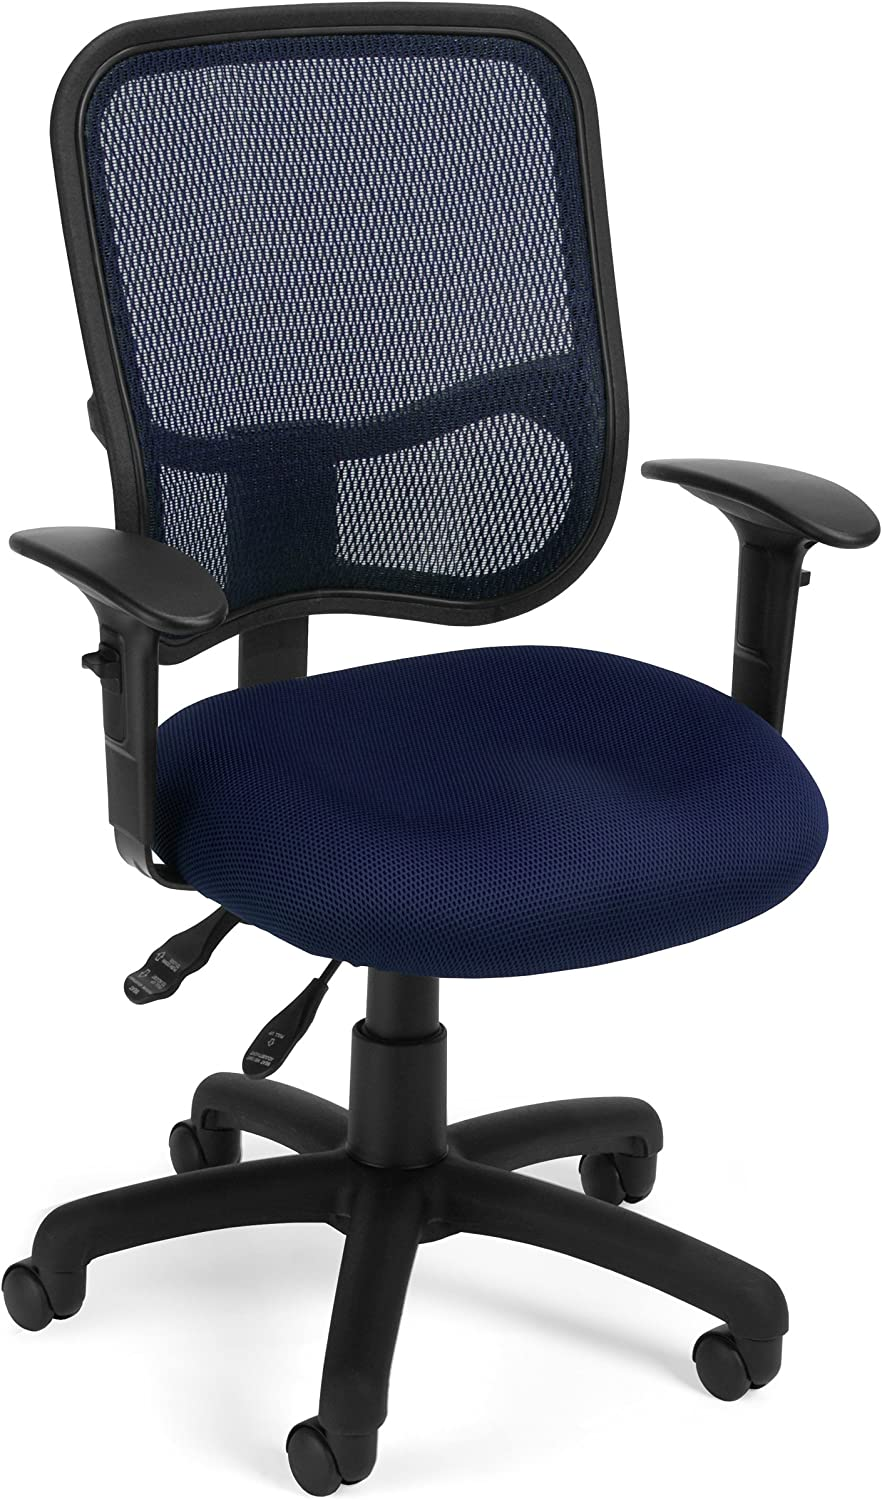 OFM Core Collection Comfort Series Ergonomic Mesh Swivel Task Chair with Arms, Mid Back, in Navy